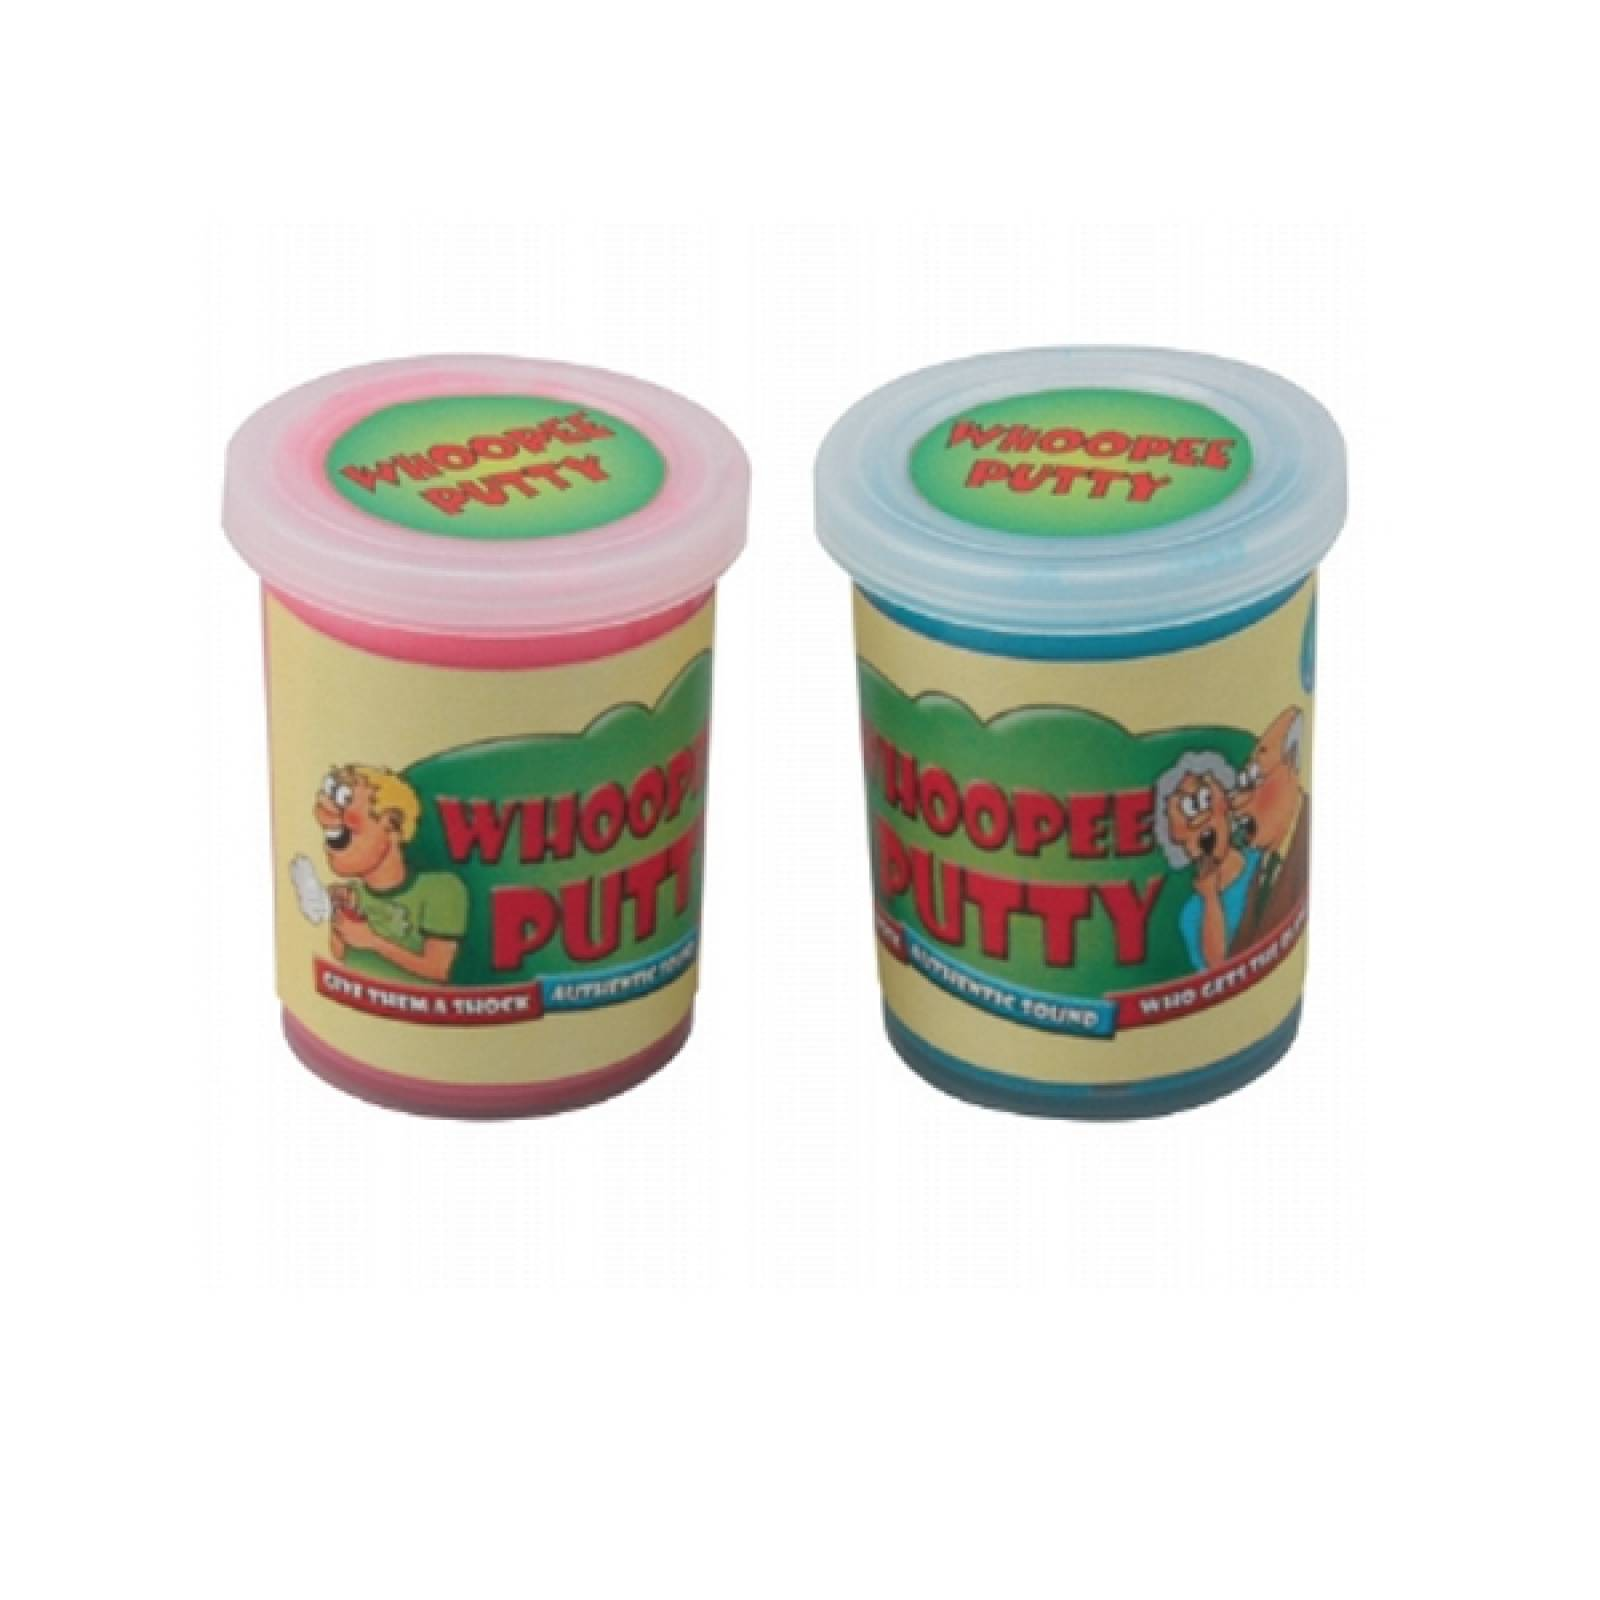 Whoopee Putty / Farty Putty 3yrs+